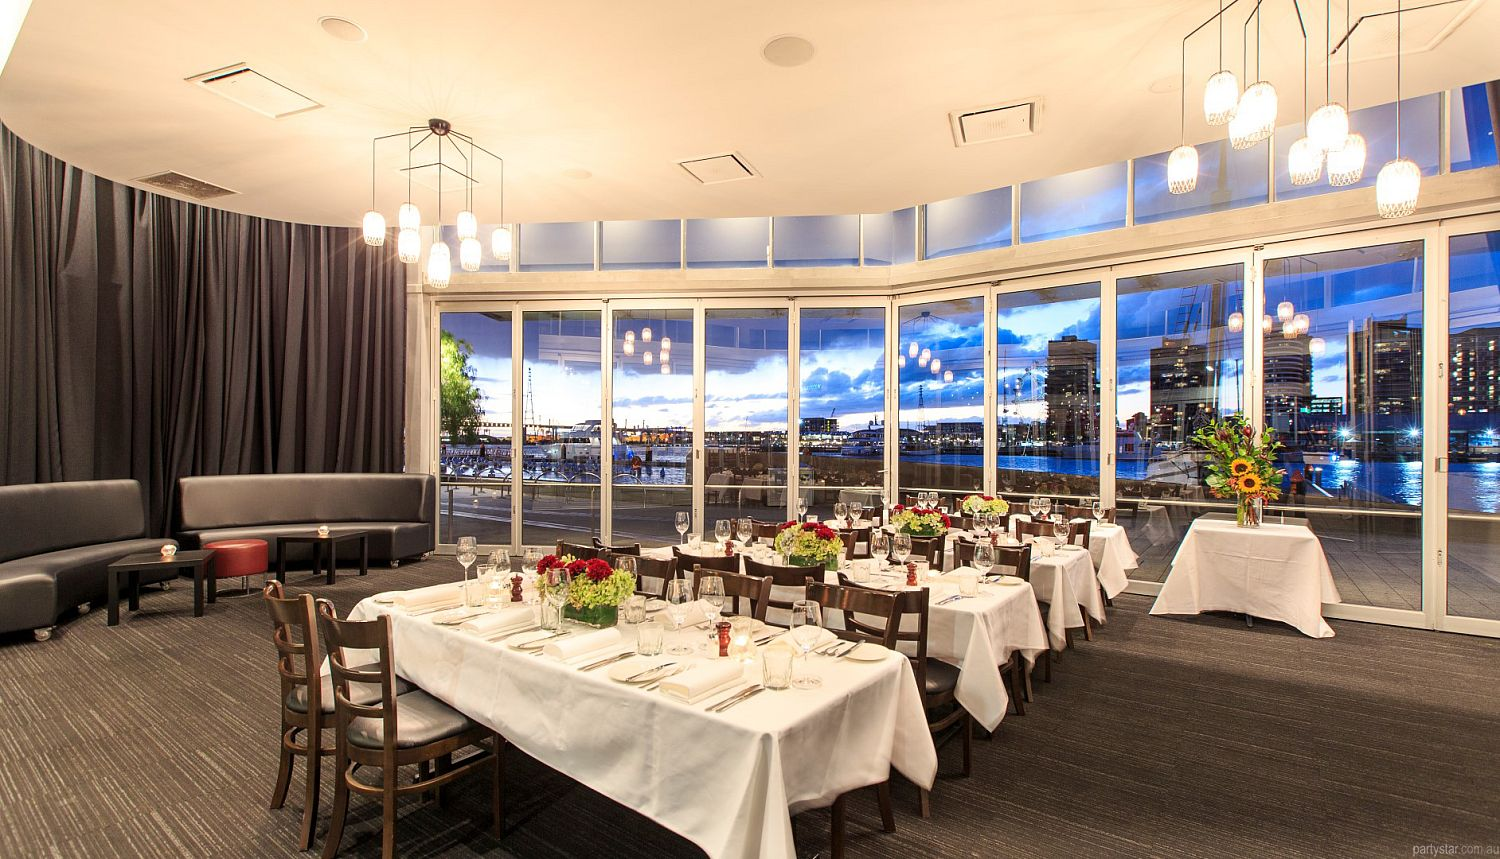 Watermark, Docklands, VIC. Function Room hire photo #2